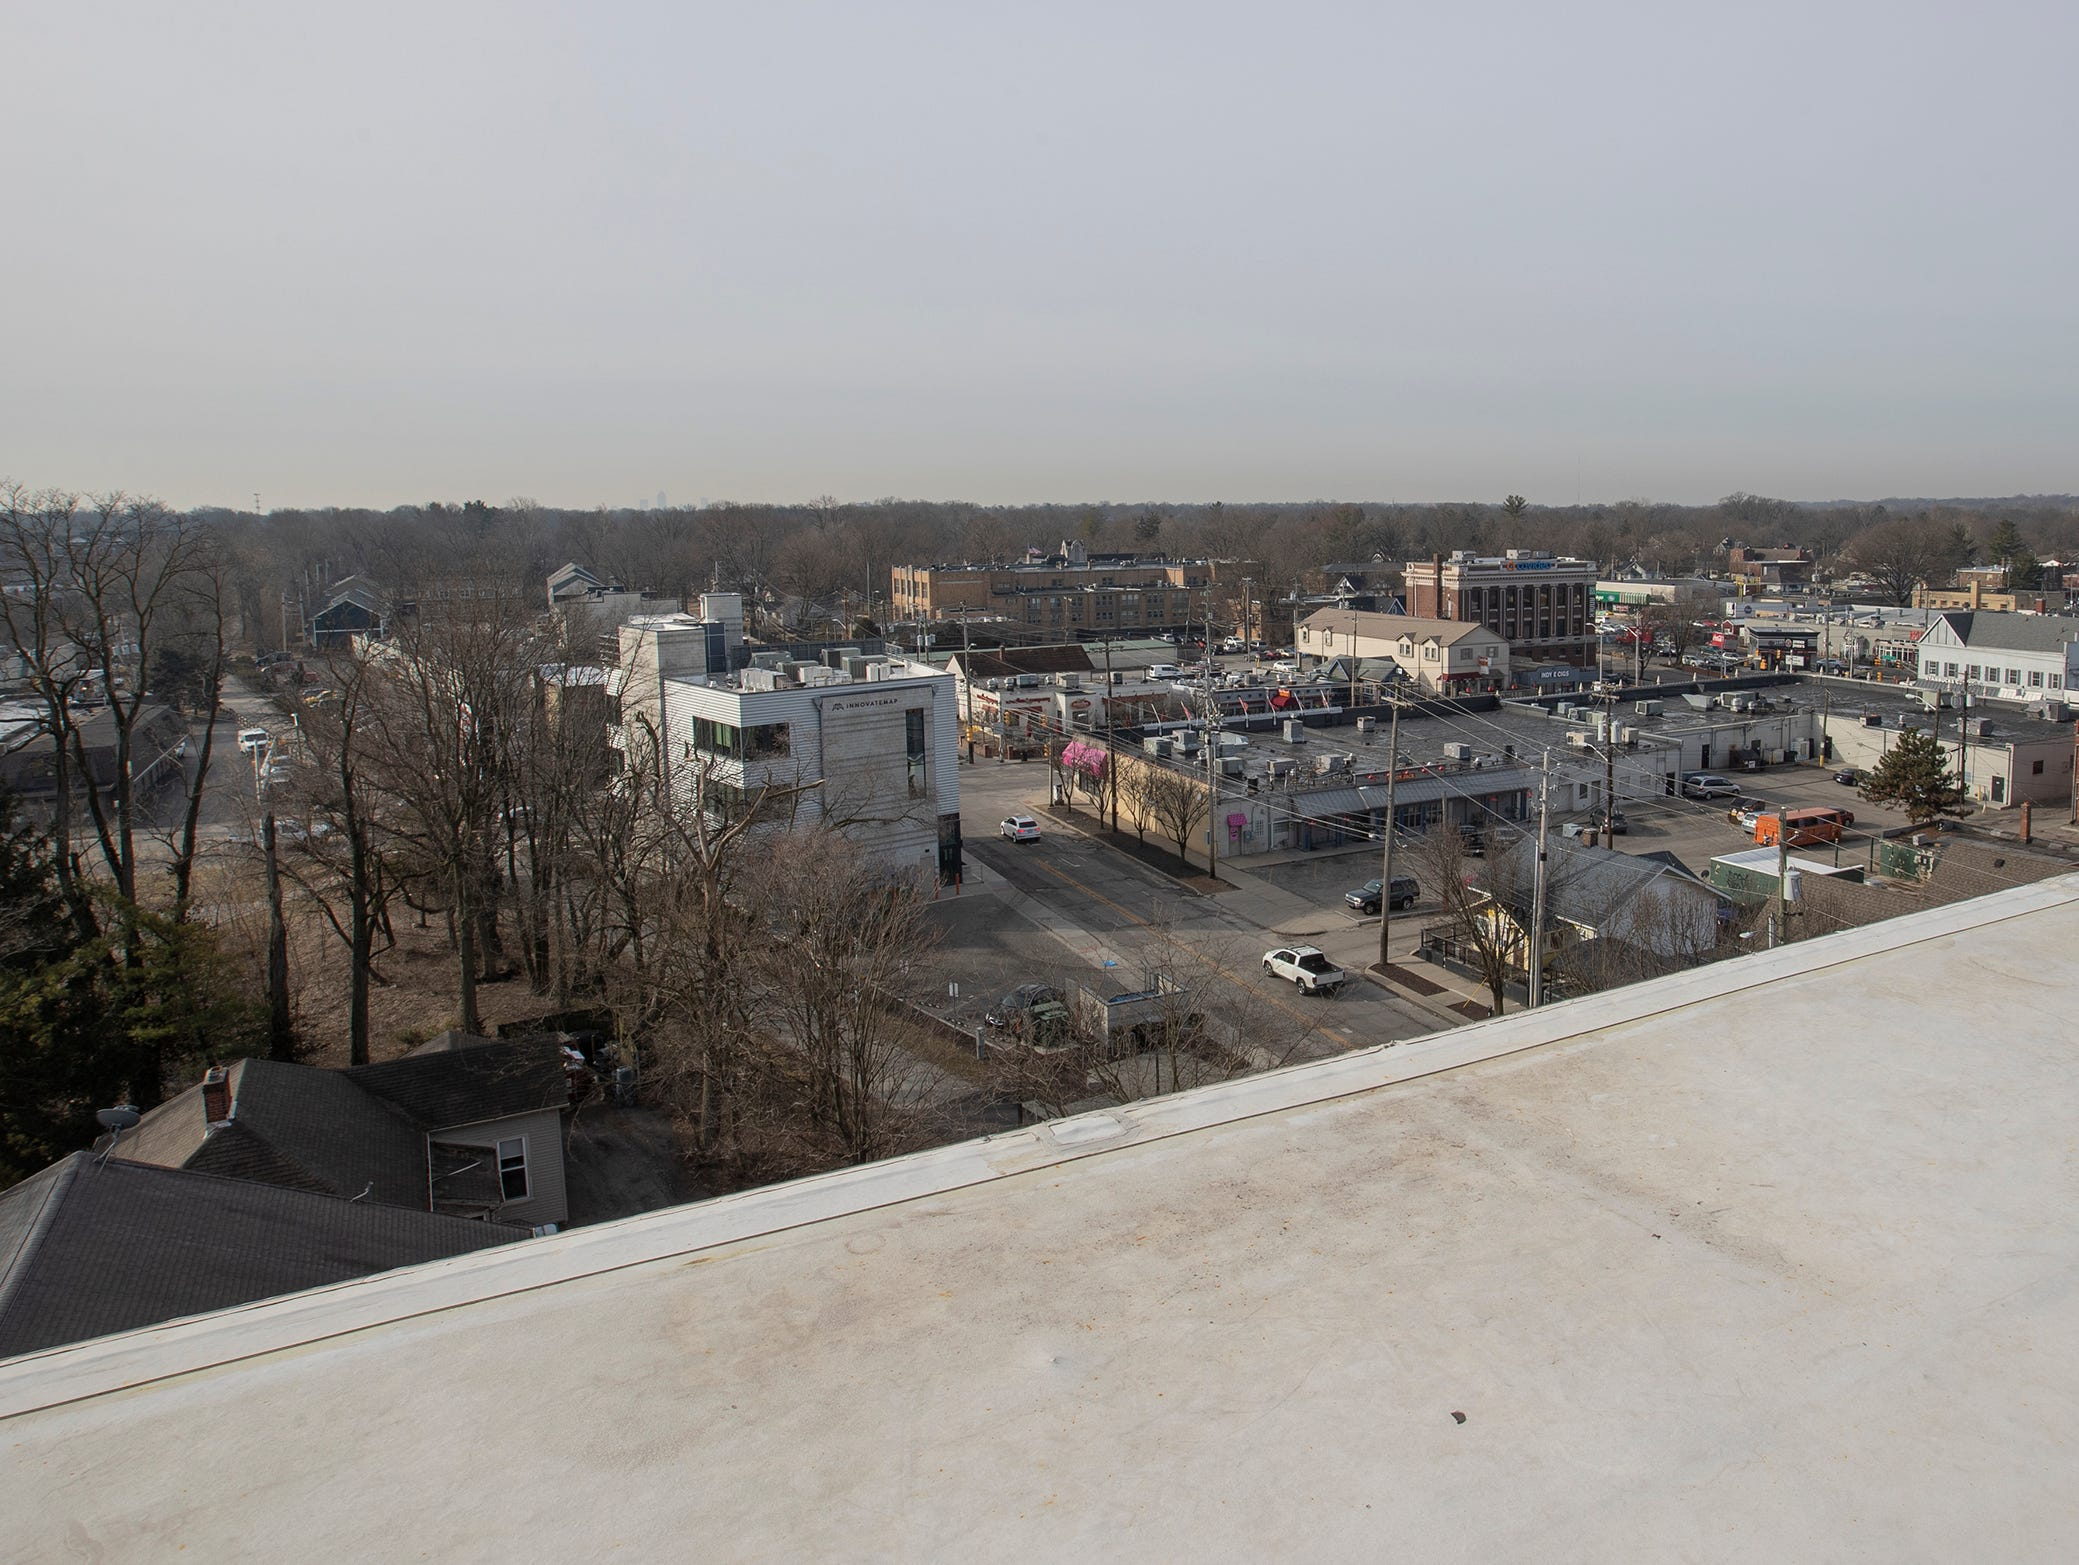 This is the view from the rooftop patio area for residents of the River House. The River House features studio, 1 and 2 bedroom new apartment homes in Broad Ripple on Tueday, March 12, 2019. Located in the heart of Broad Ripple right on the Monon Trail and White River.